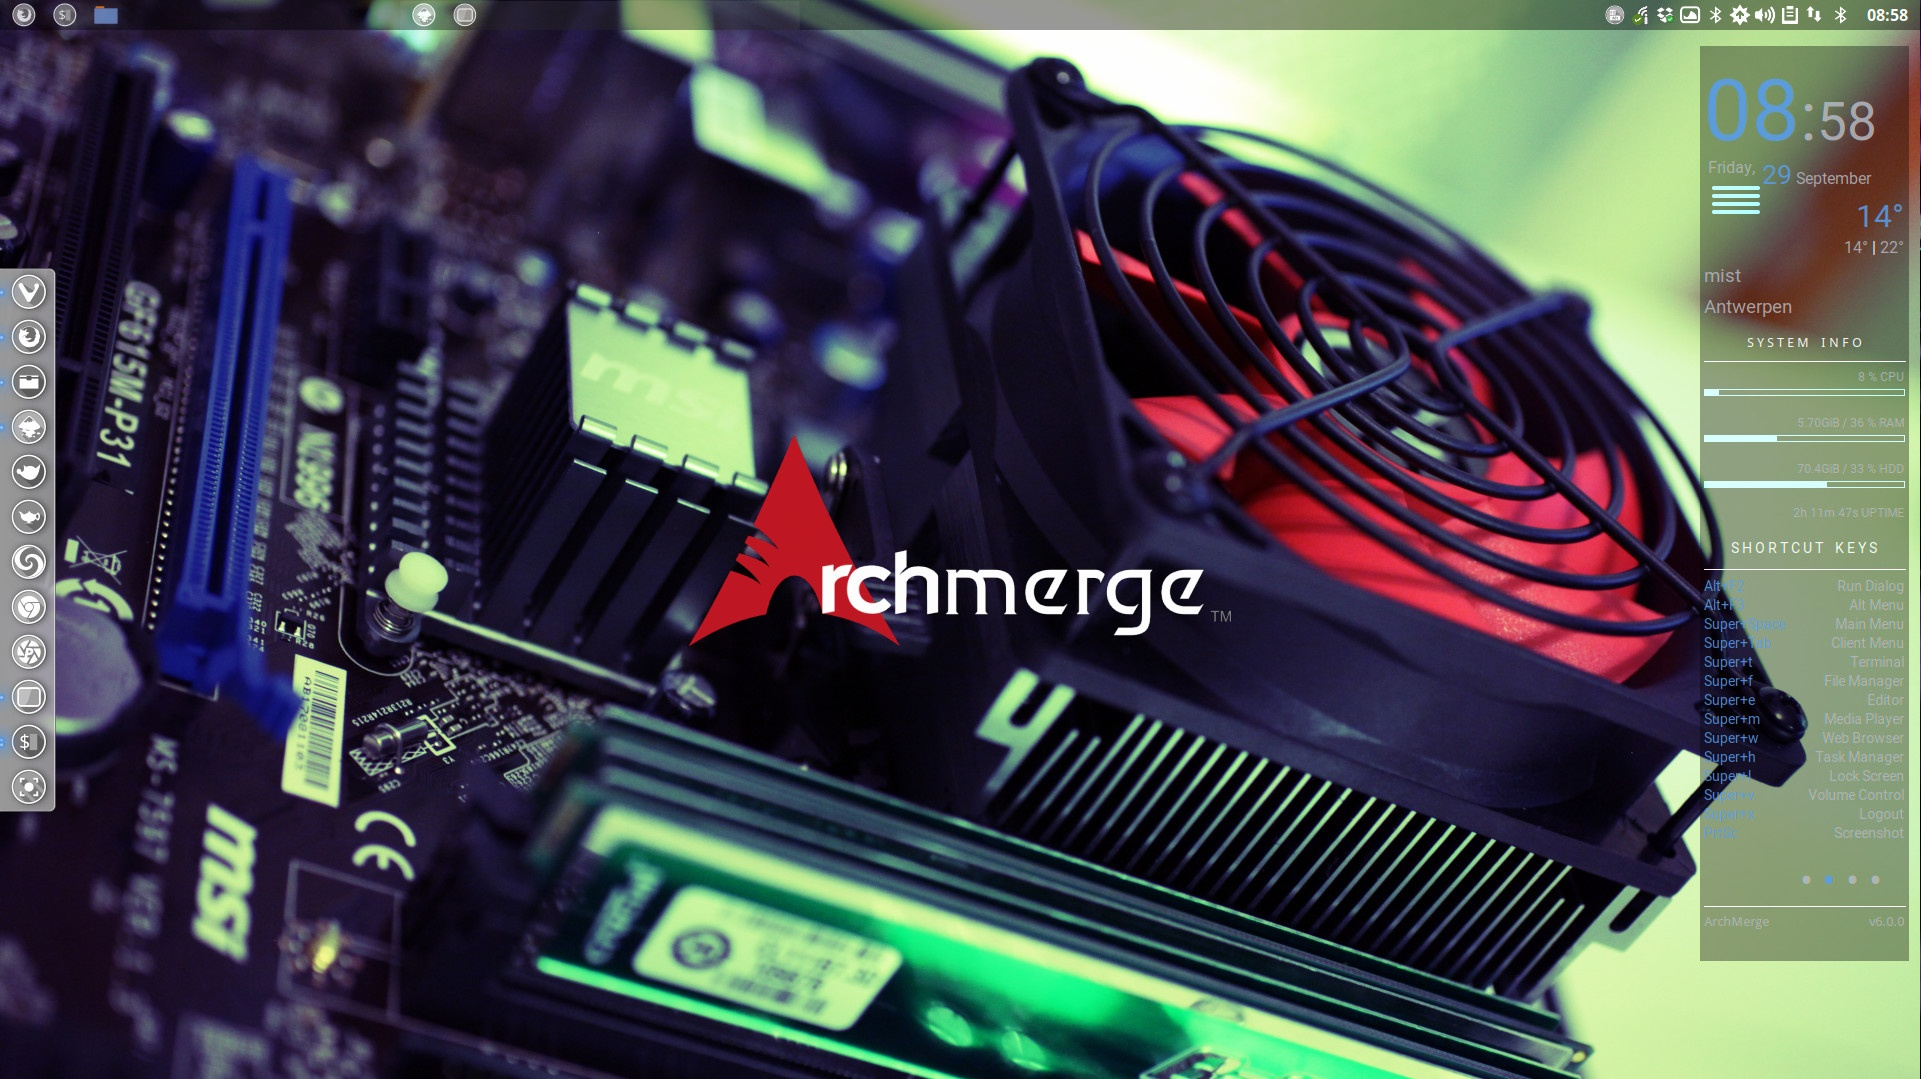 How to change the color of the ArchMerge logo